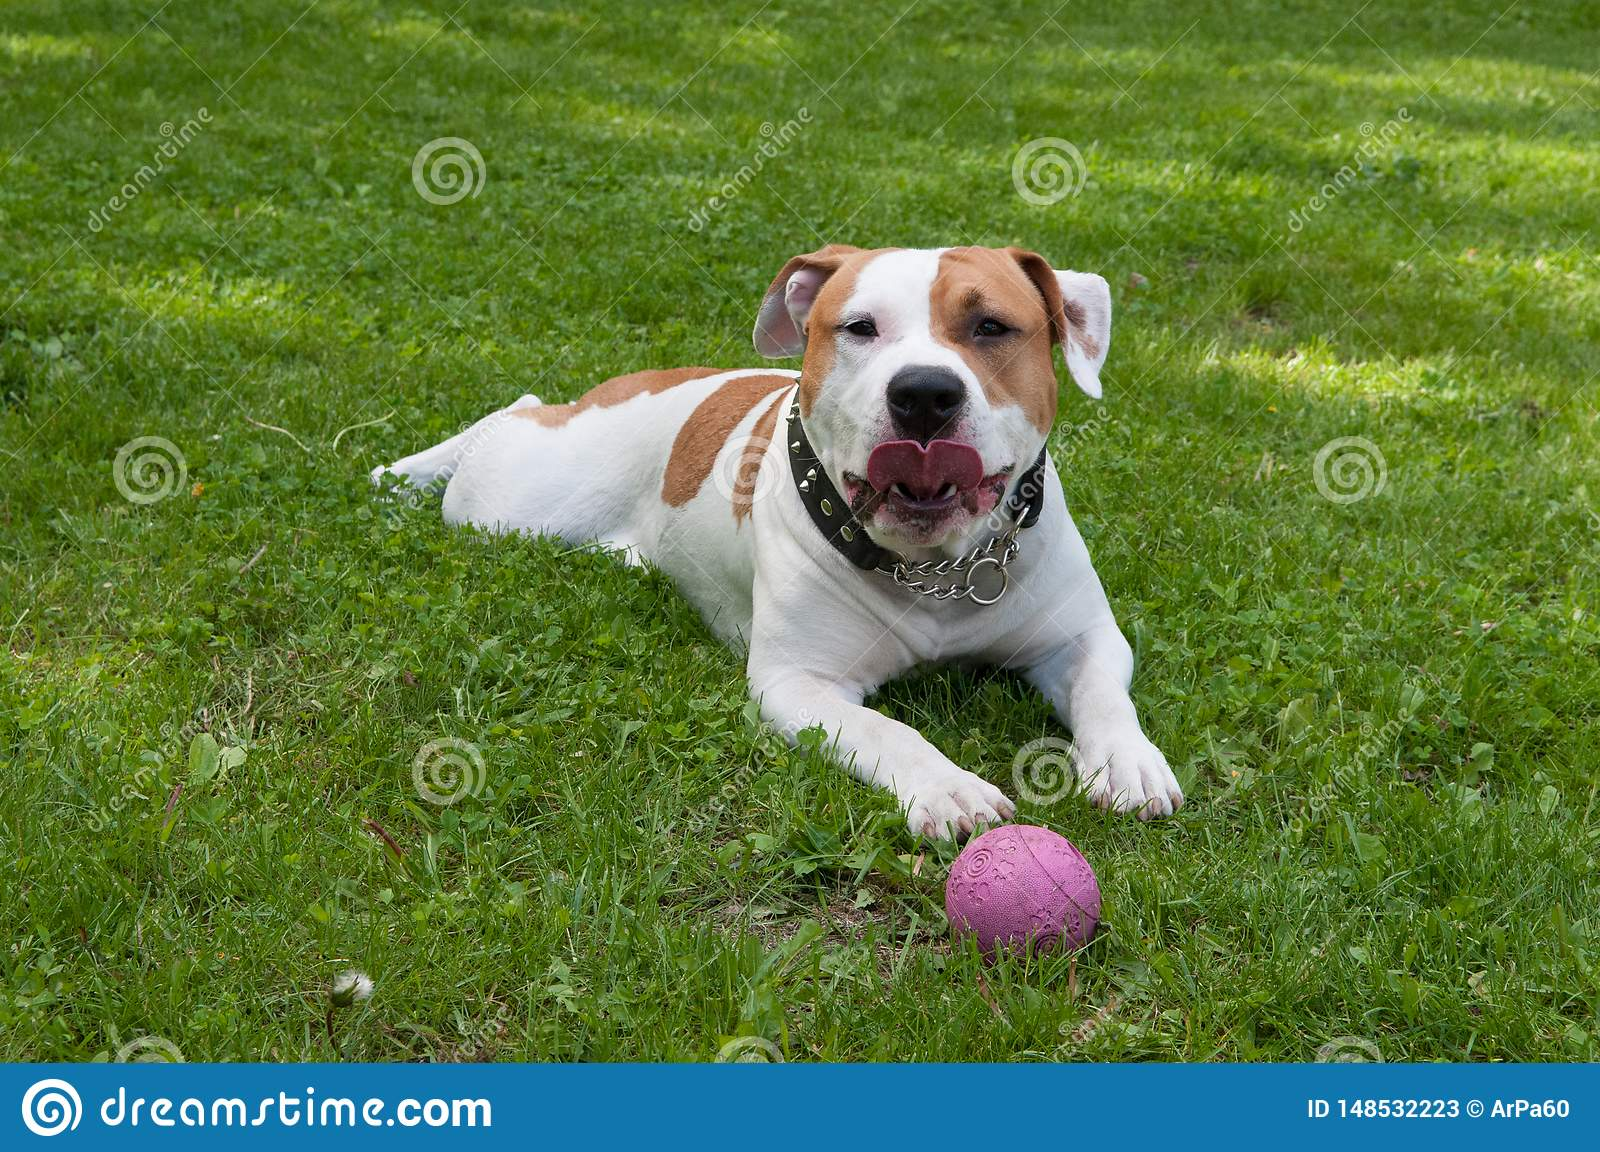 Dog is lying with ball in green grass yard.